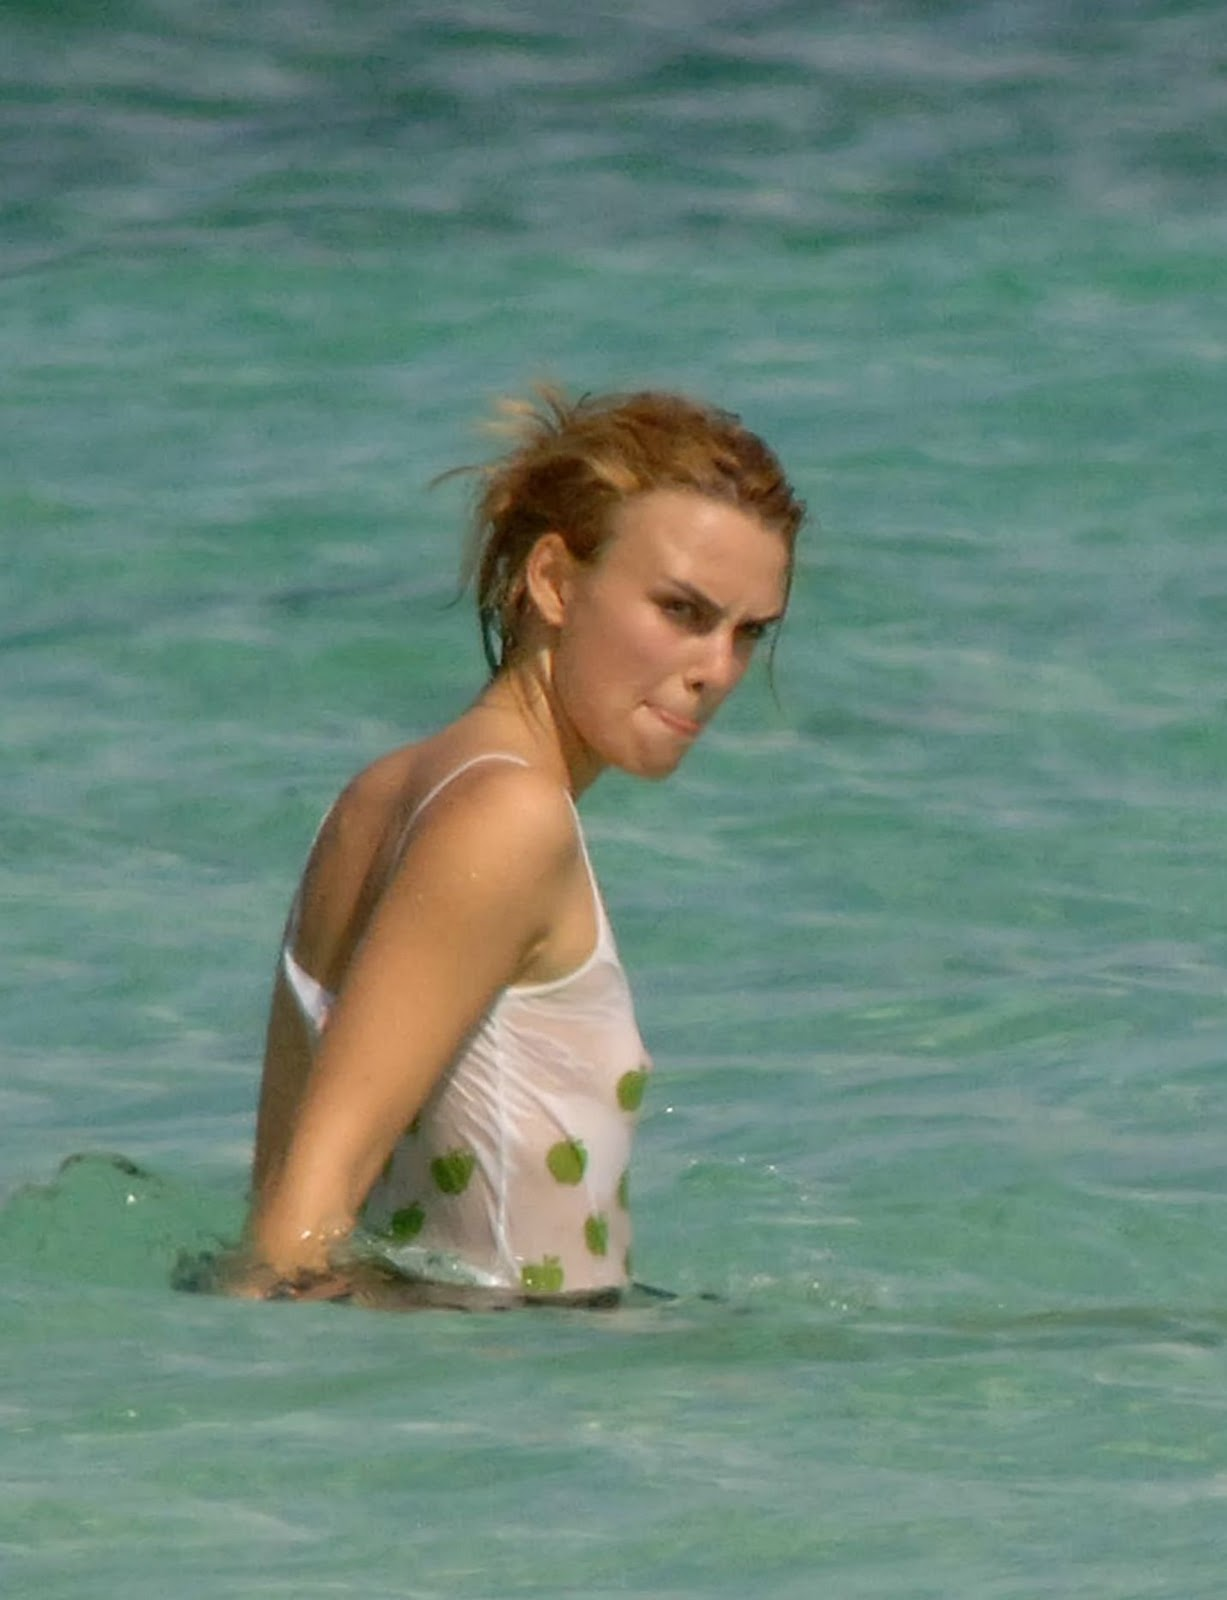 http://3.bp.blogspot.com/_pGTlBw_z2AM/TJ04abn2kwI/AAAAAAAAAVY/jgoGeNRFEGs/s1600/keira-knightley-beach-11+seethrough.jpg